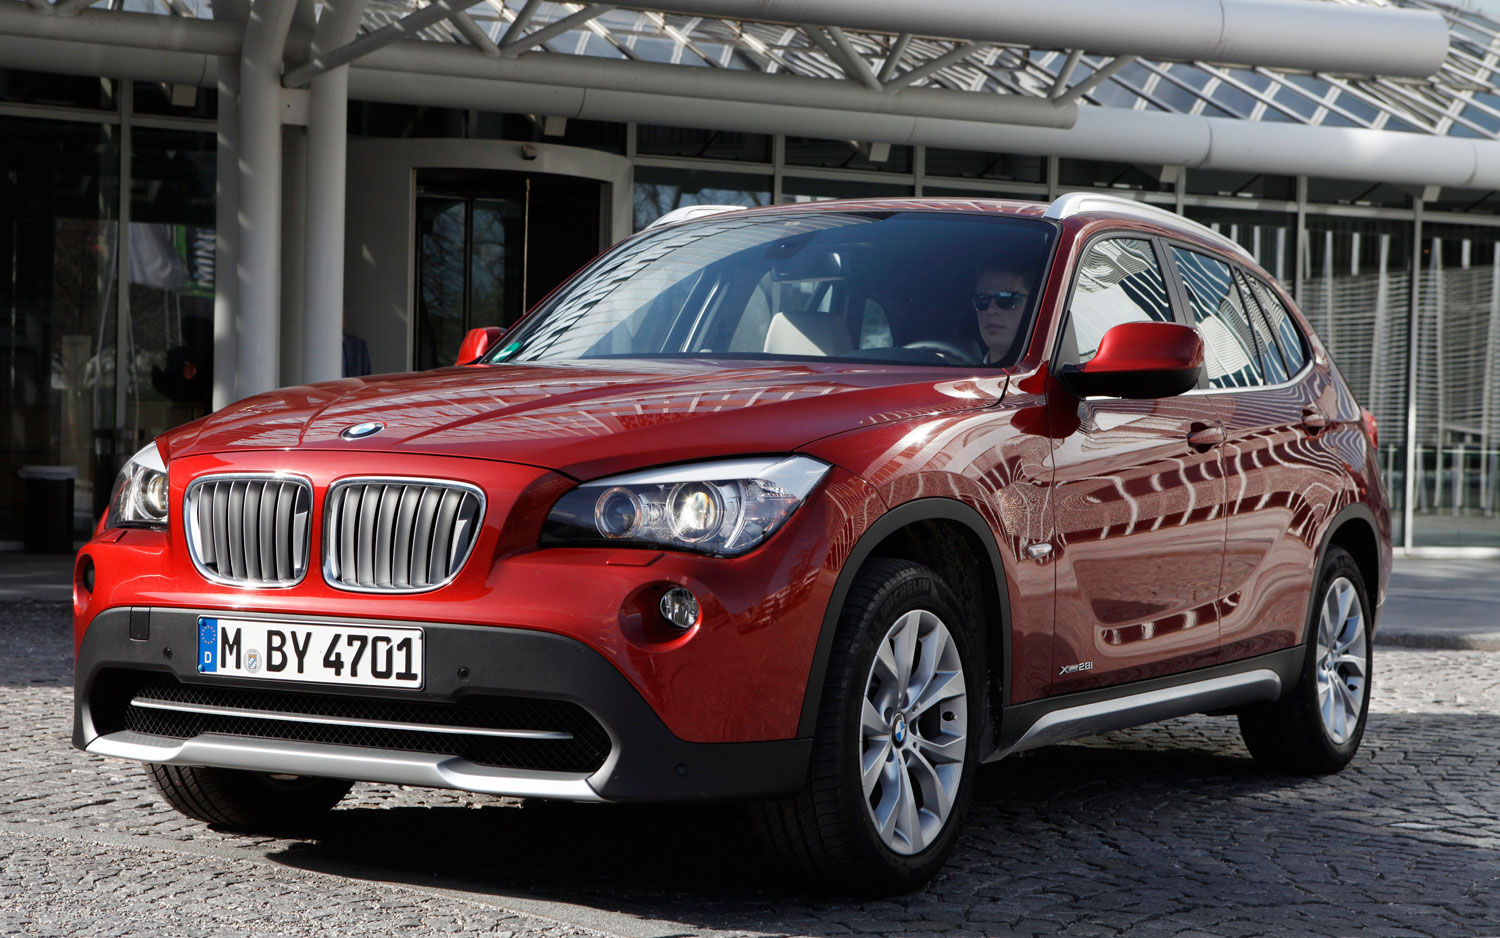 BMW Planning To Debut X1 Crossover In New York